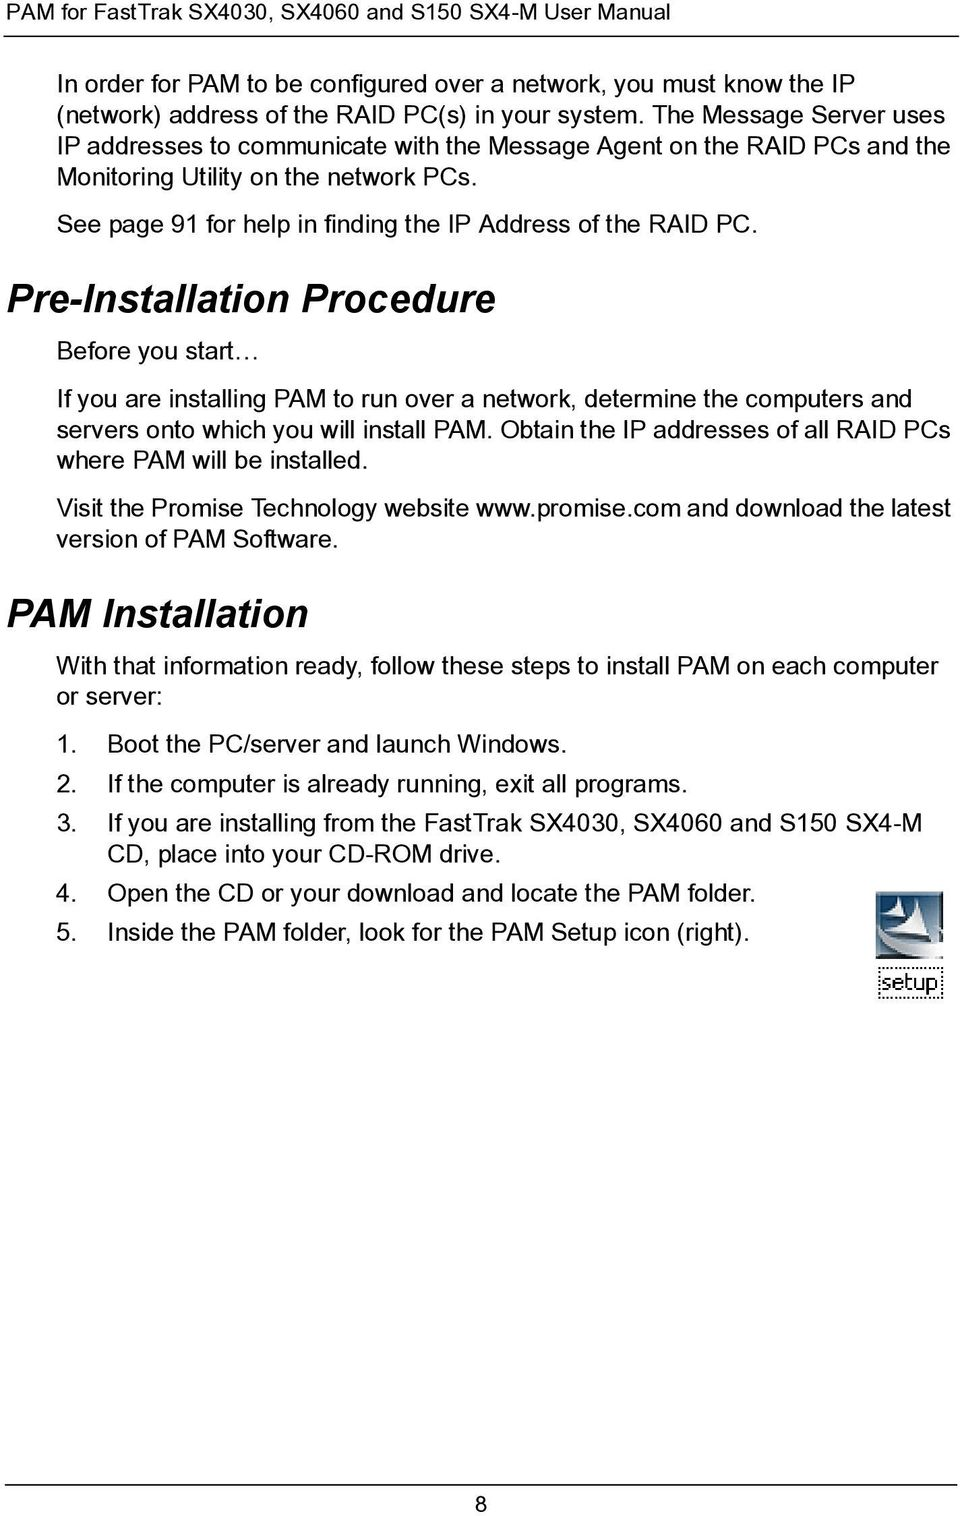 Pre-Installation Procedure Before you start If you are installing PAM to run over a network, determine the computers and servers onto which you will install PAM.